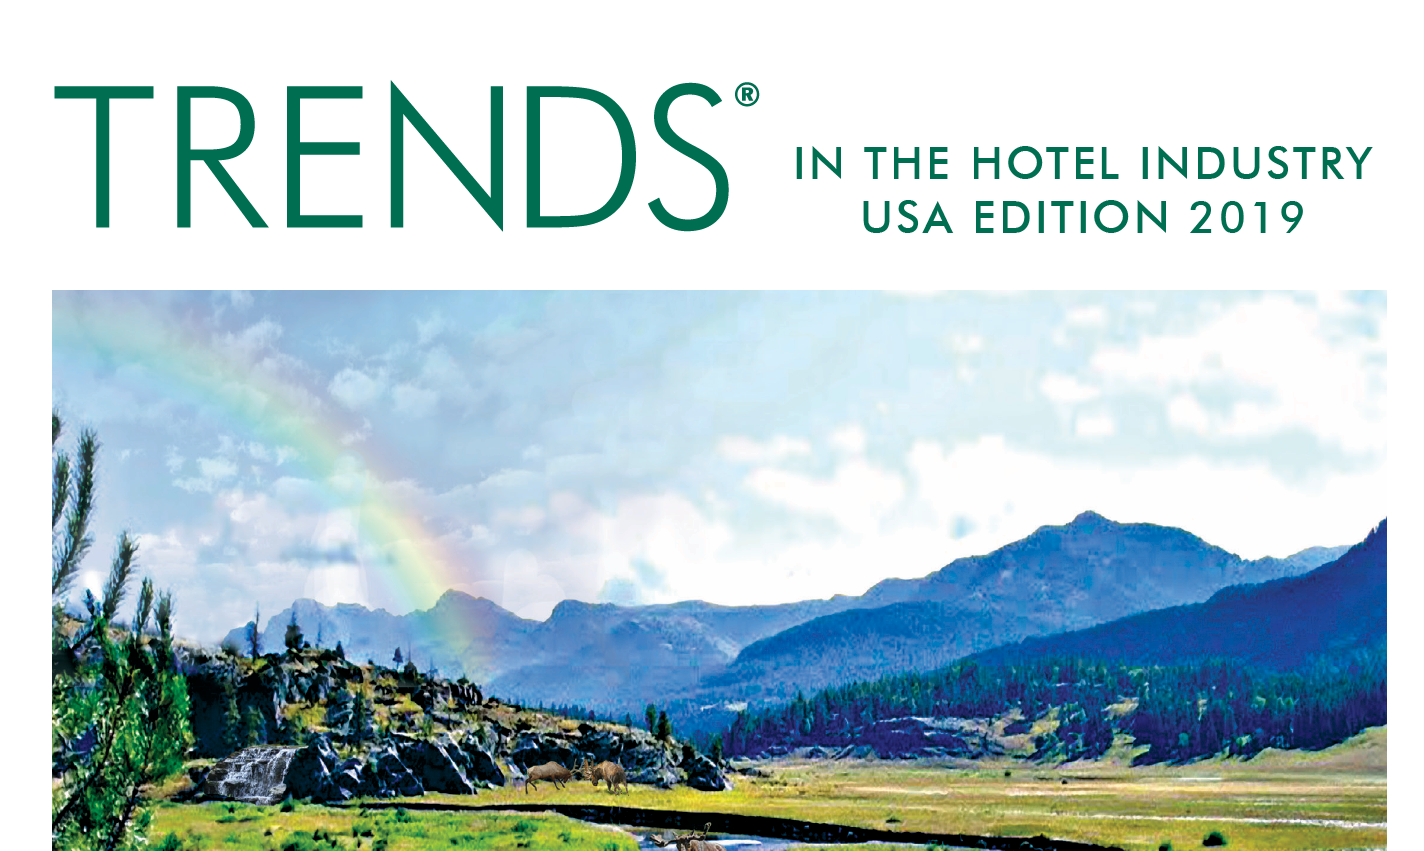 Hotel Industry Trends & Benchmarking